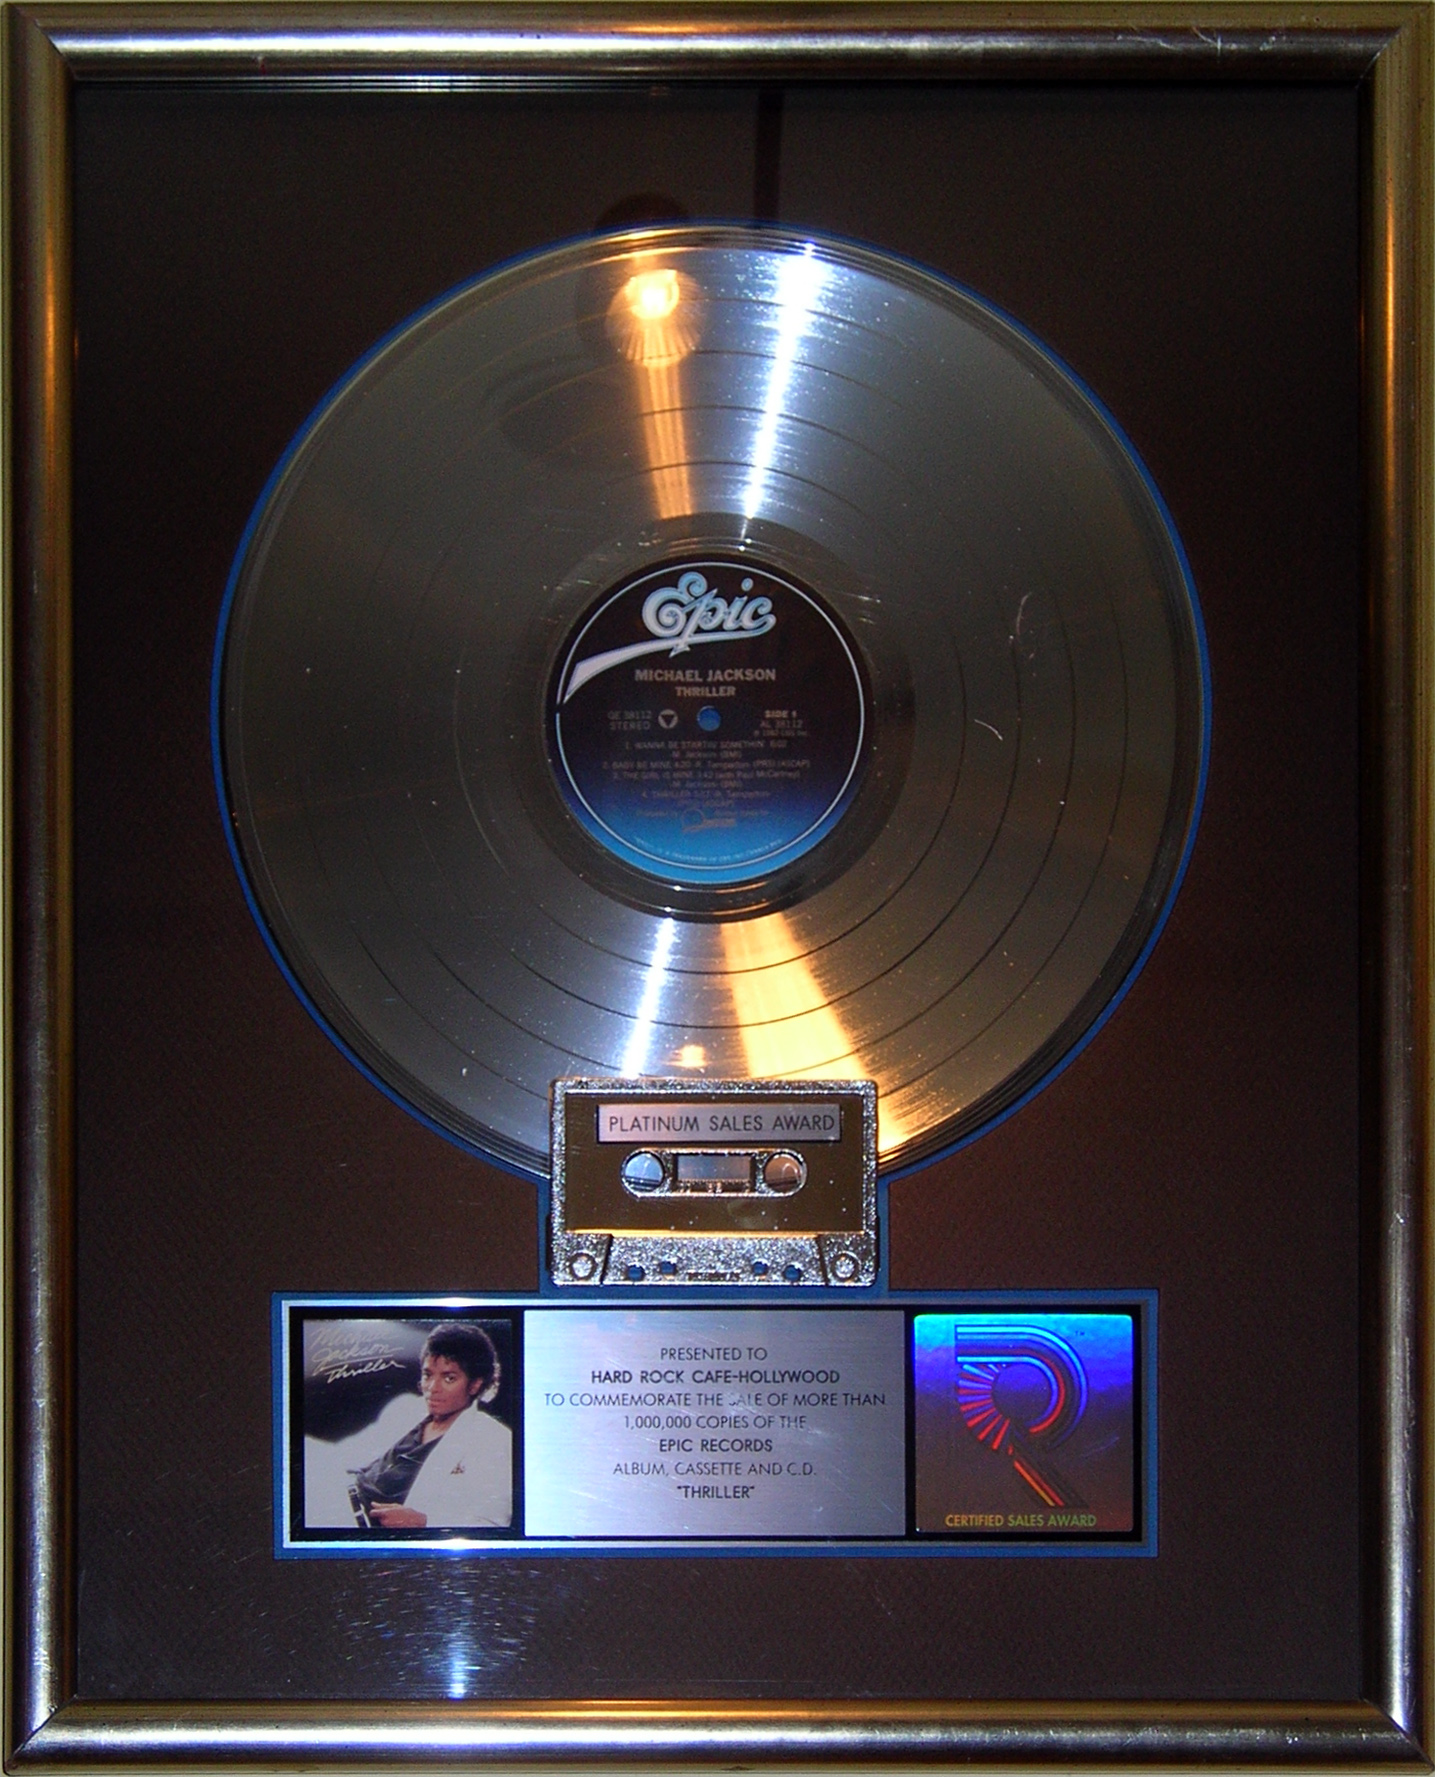 Thriller_platinum_record,_Hard_Rock_Cafe_Hollywood